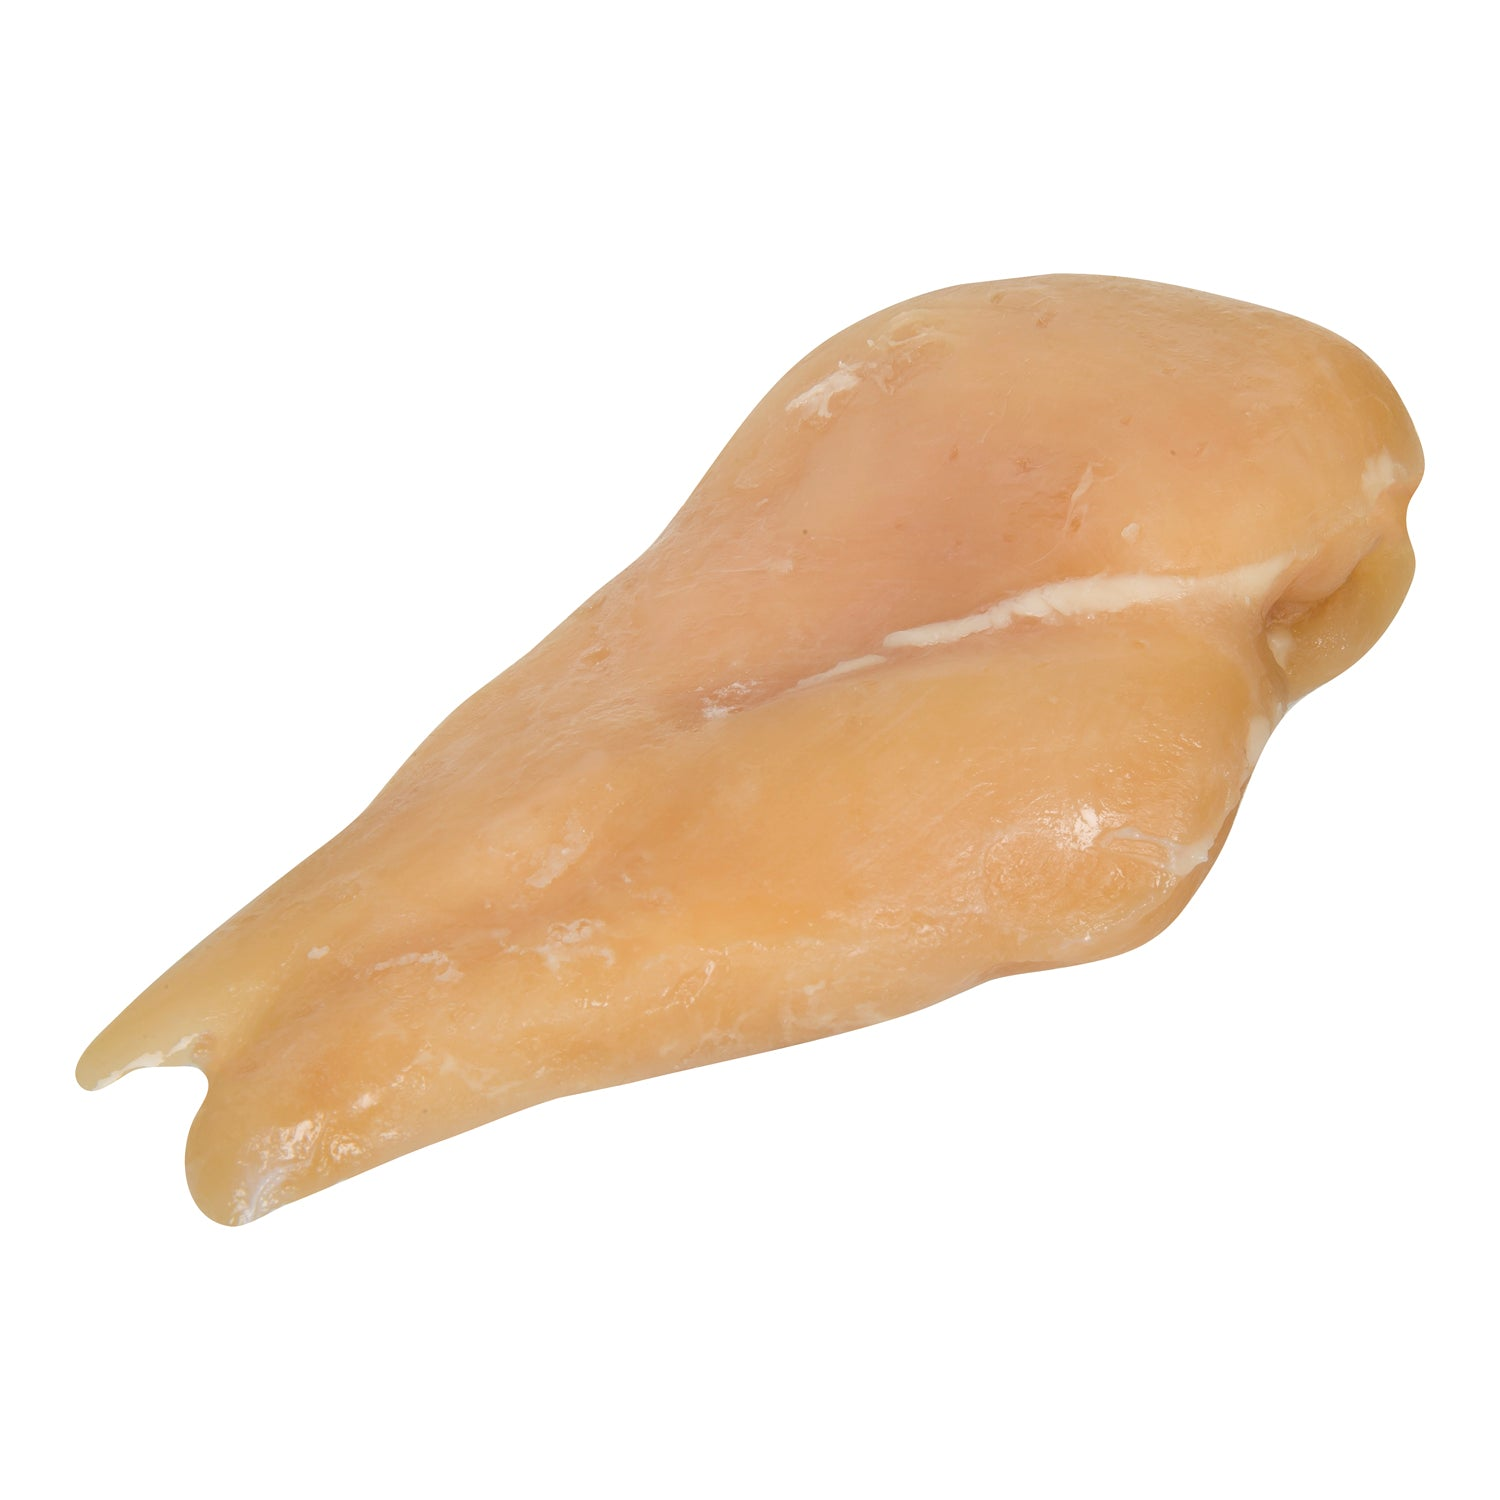 Sysco Reliance Individually Quick Frozen Boneless Skinless Chicken Breast Various Sizes 4 kg - 1 Pack [$10.50/kg]